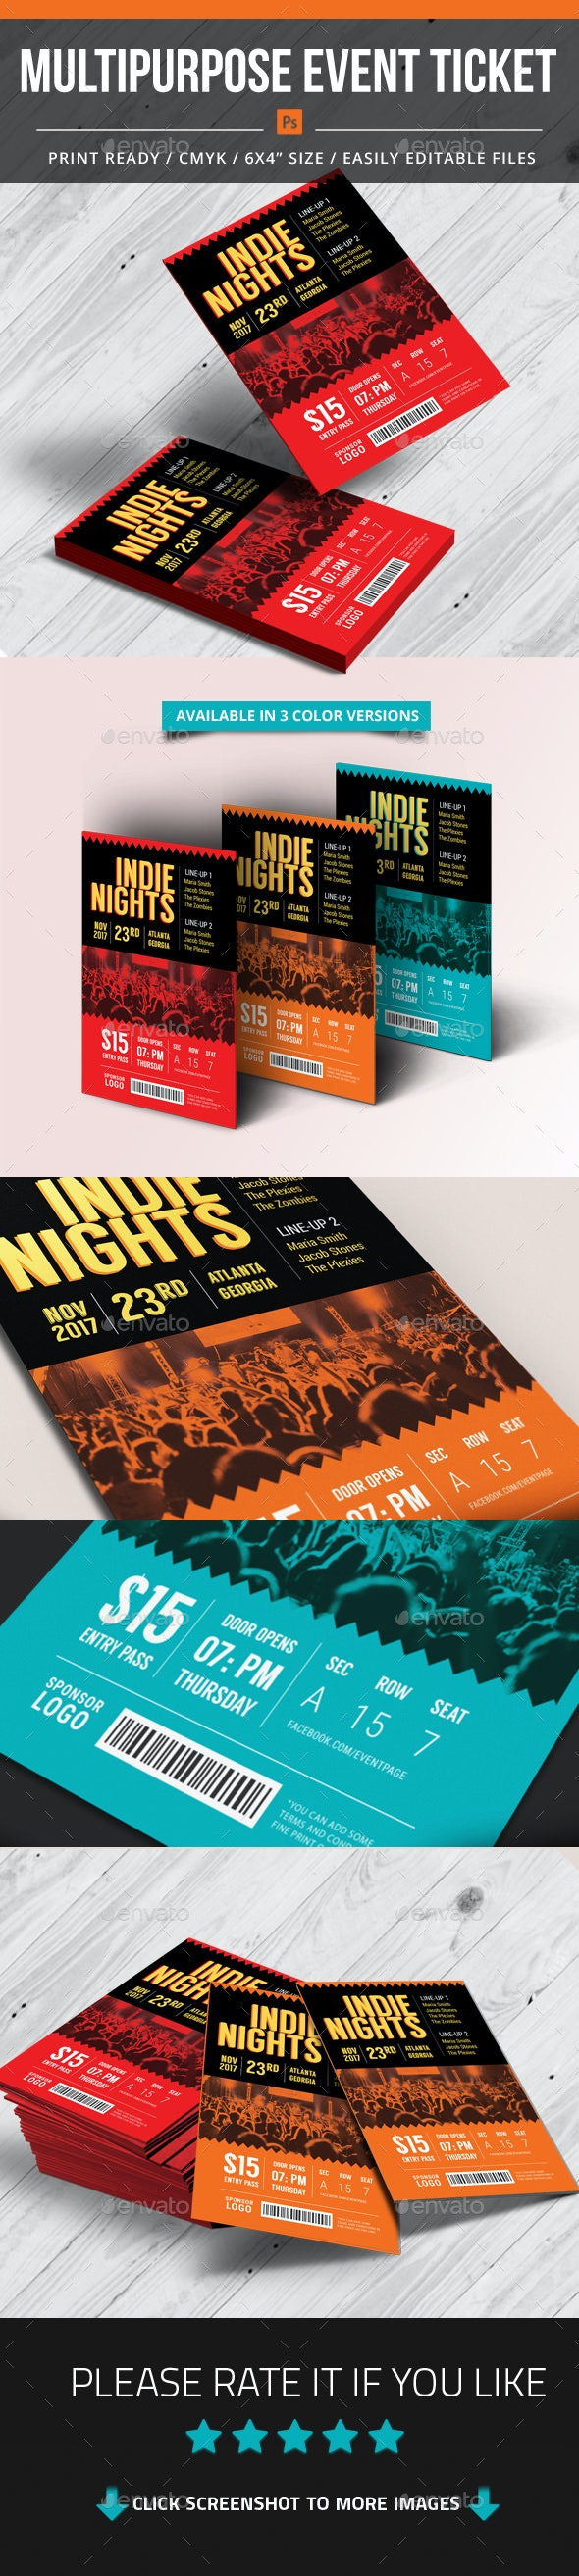 Multipurpose Event Ticket - Events Flyers